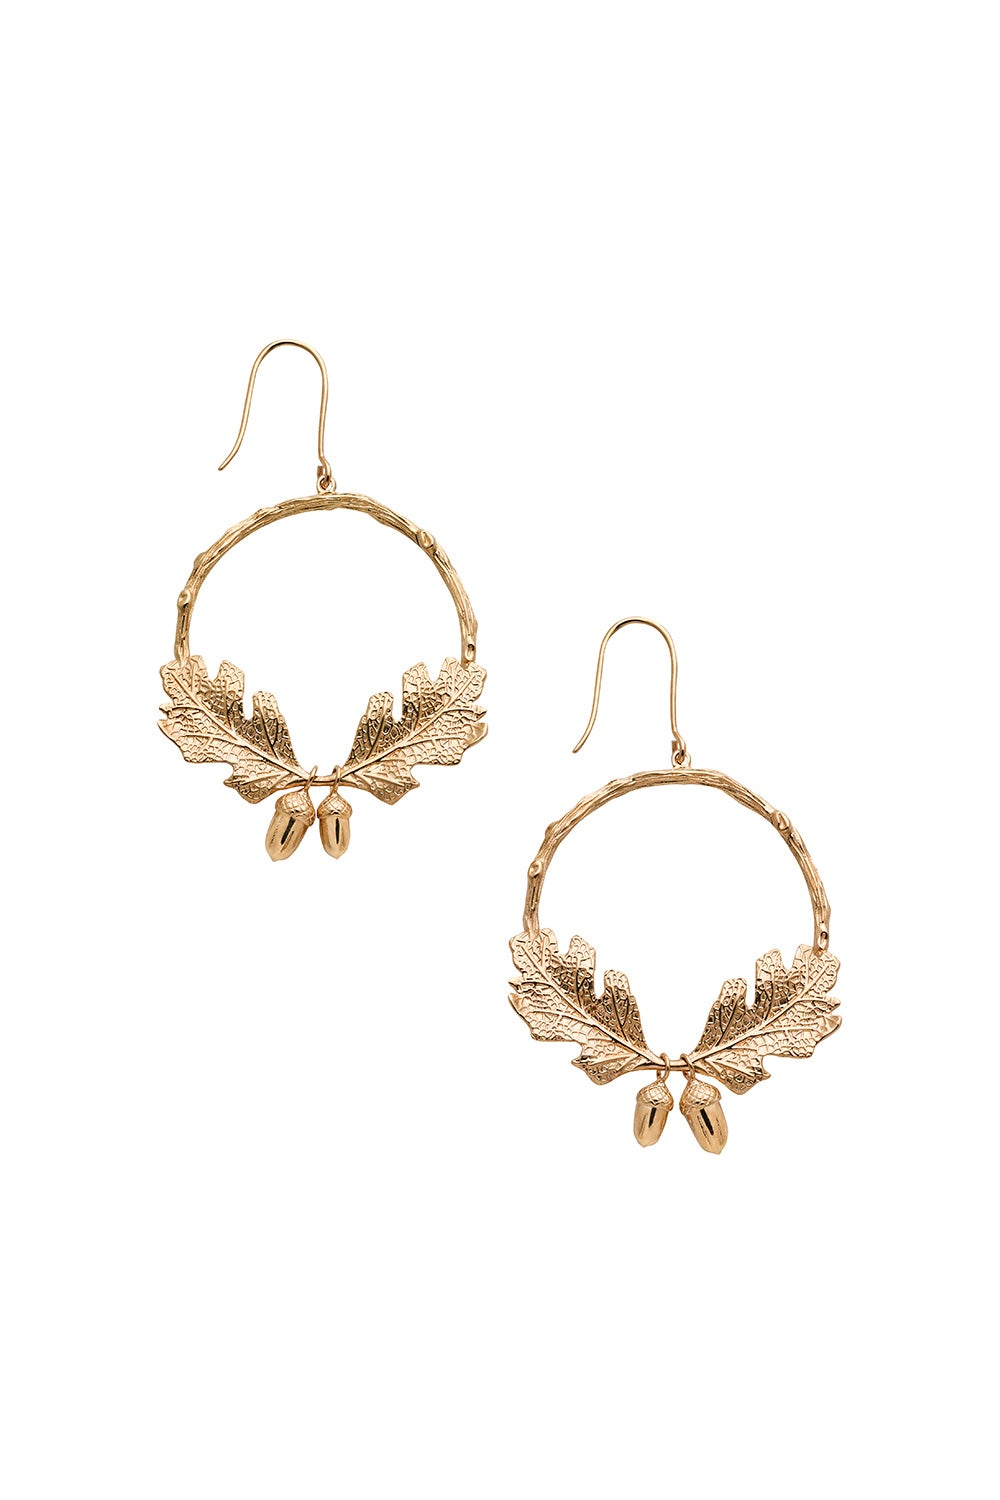 Acorn and Leaf Wreath Earrings Gold